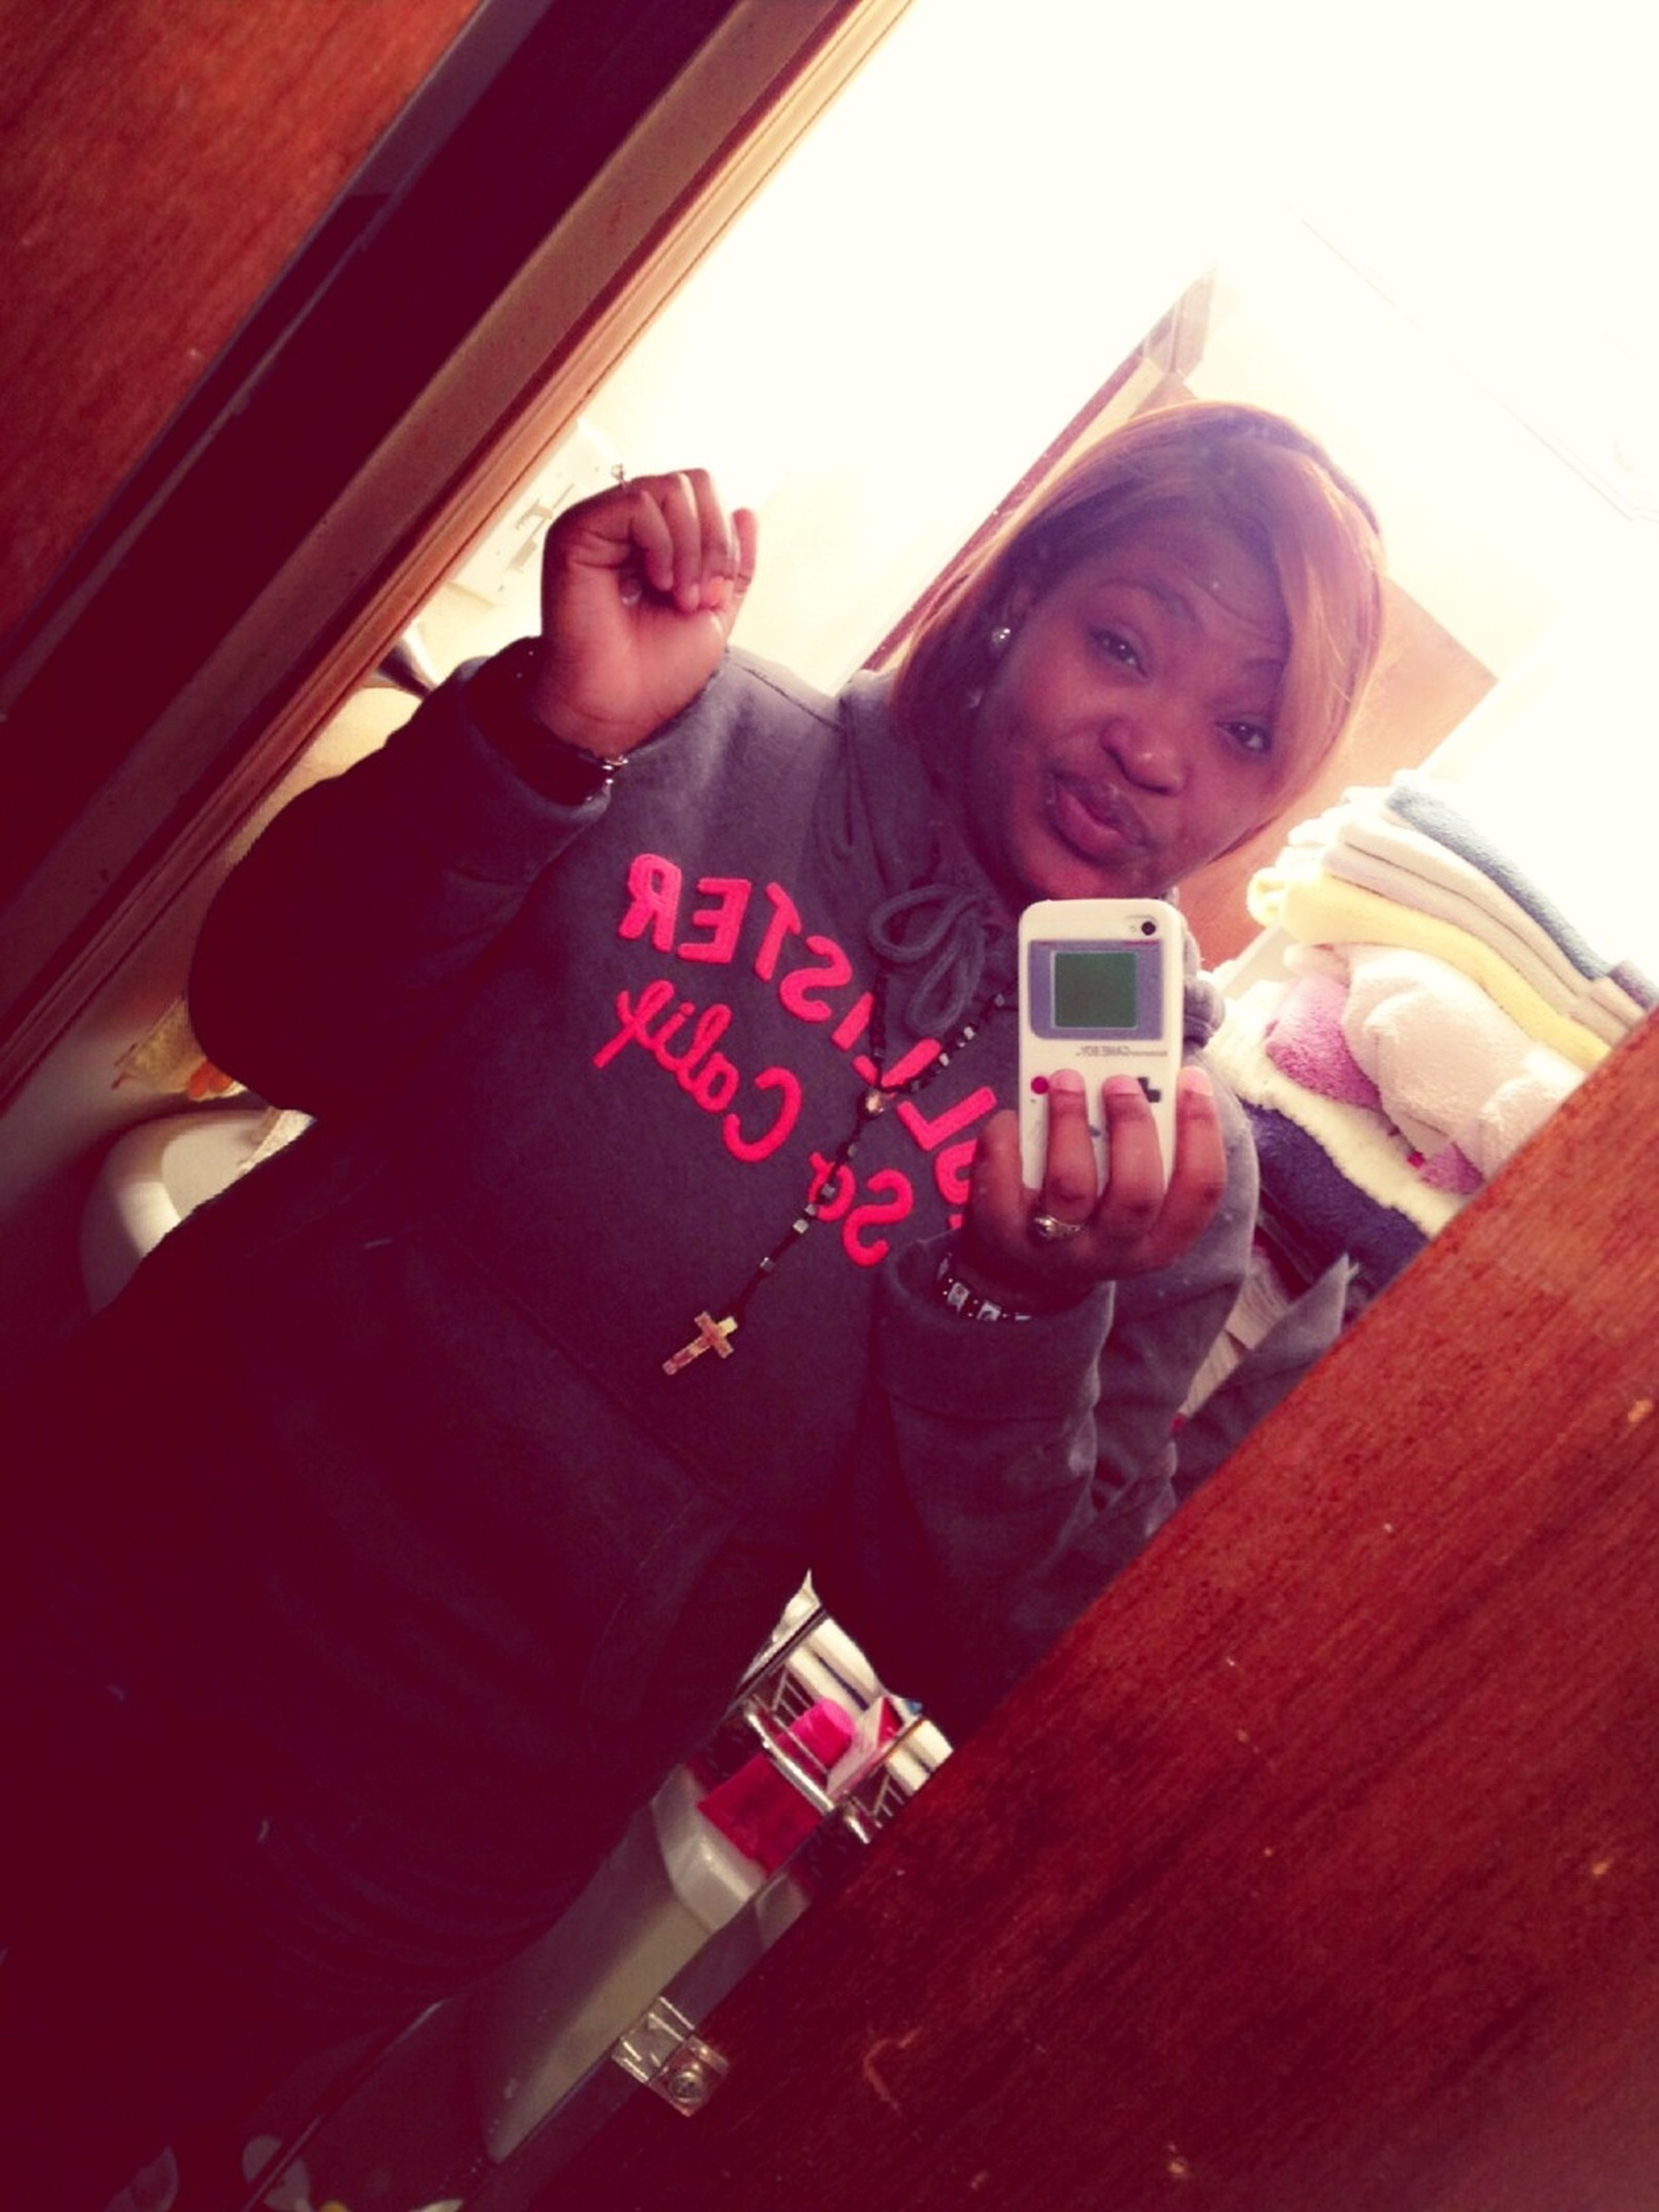 -She Been In Tha Game,She Aint Taking No Lost #BabyThugg